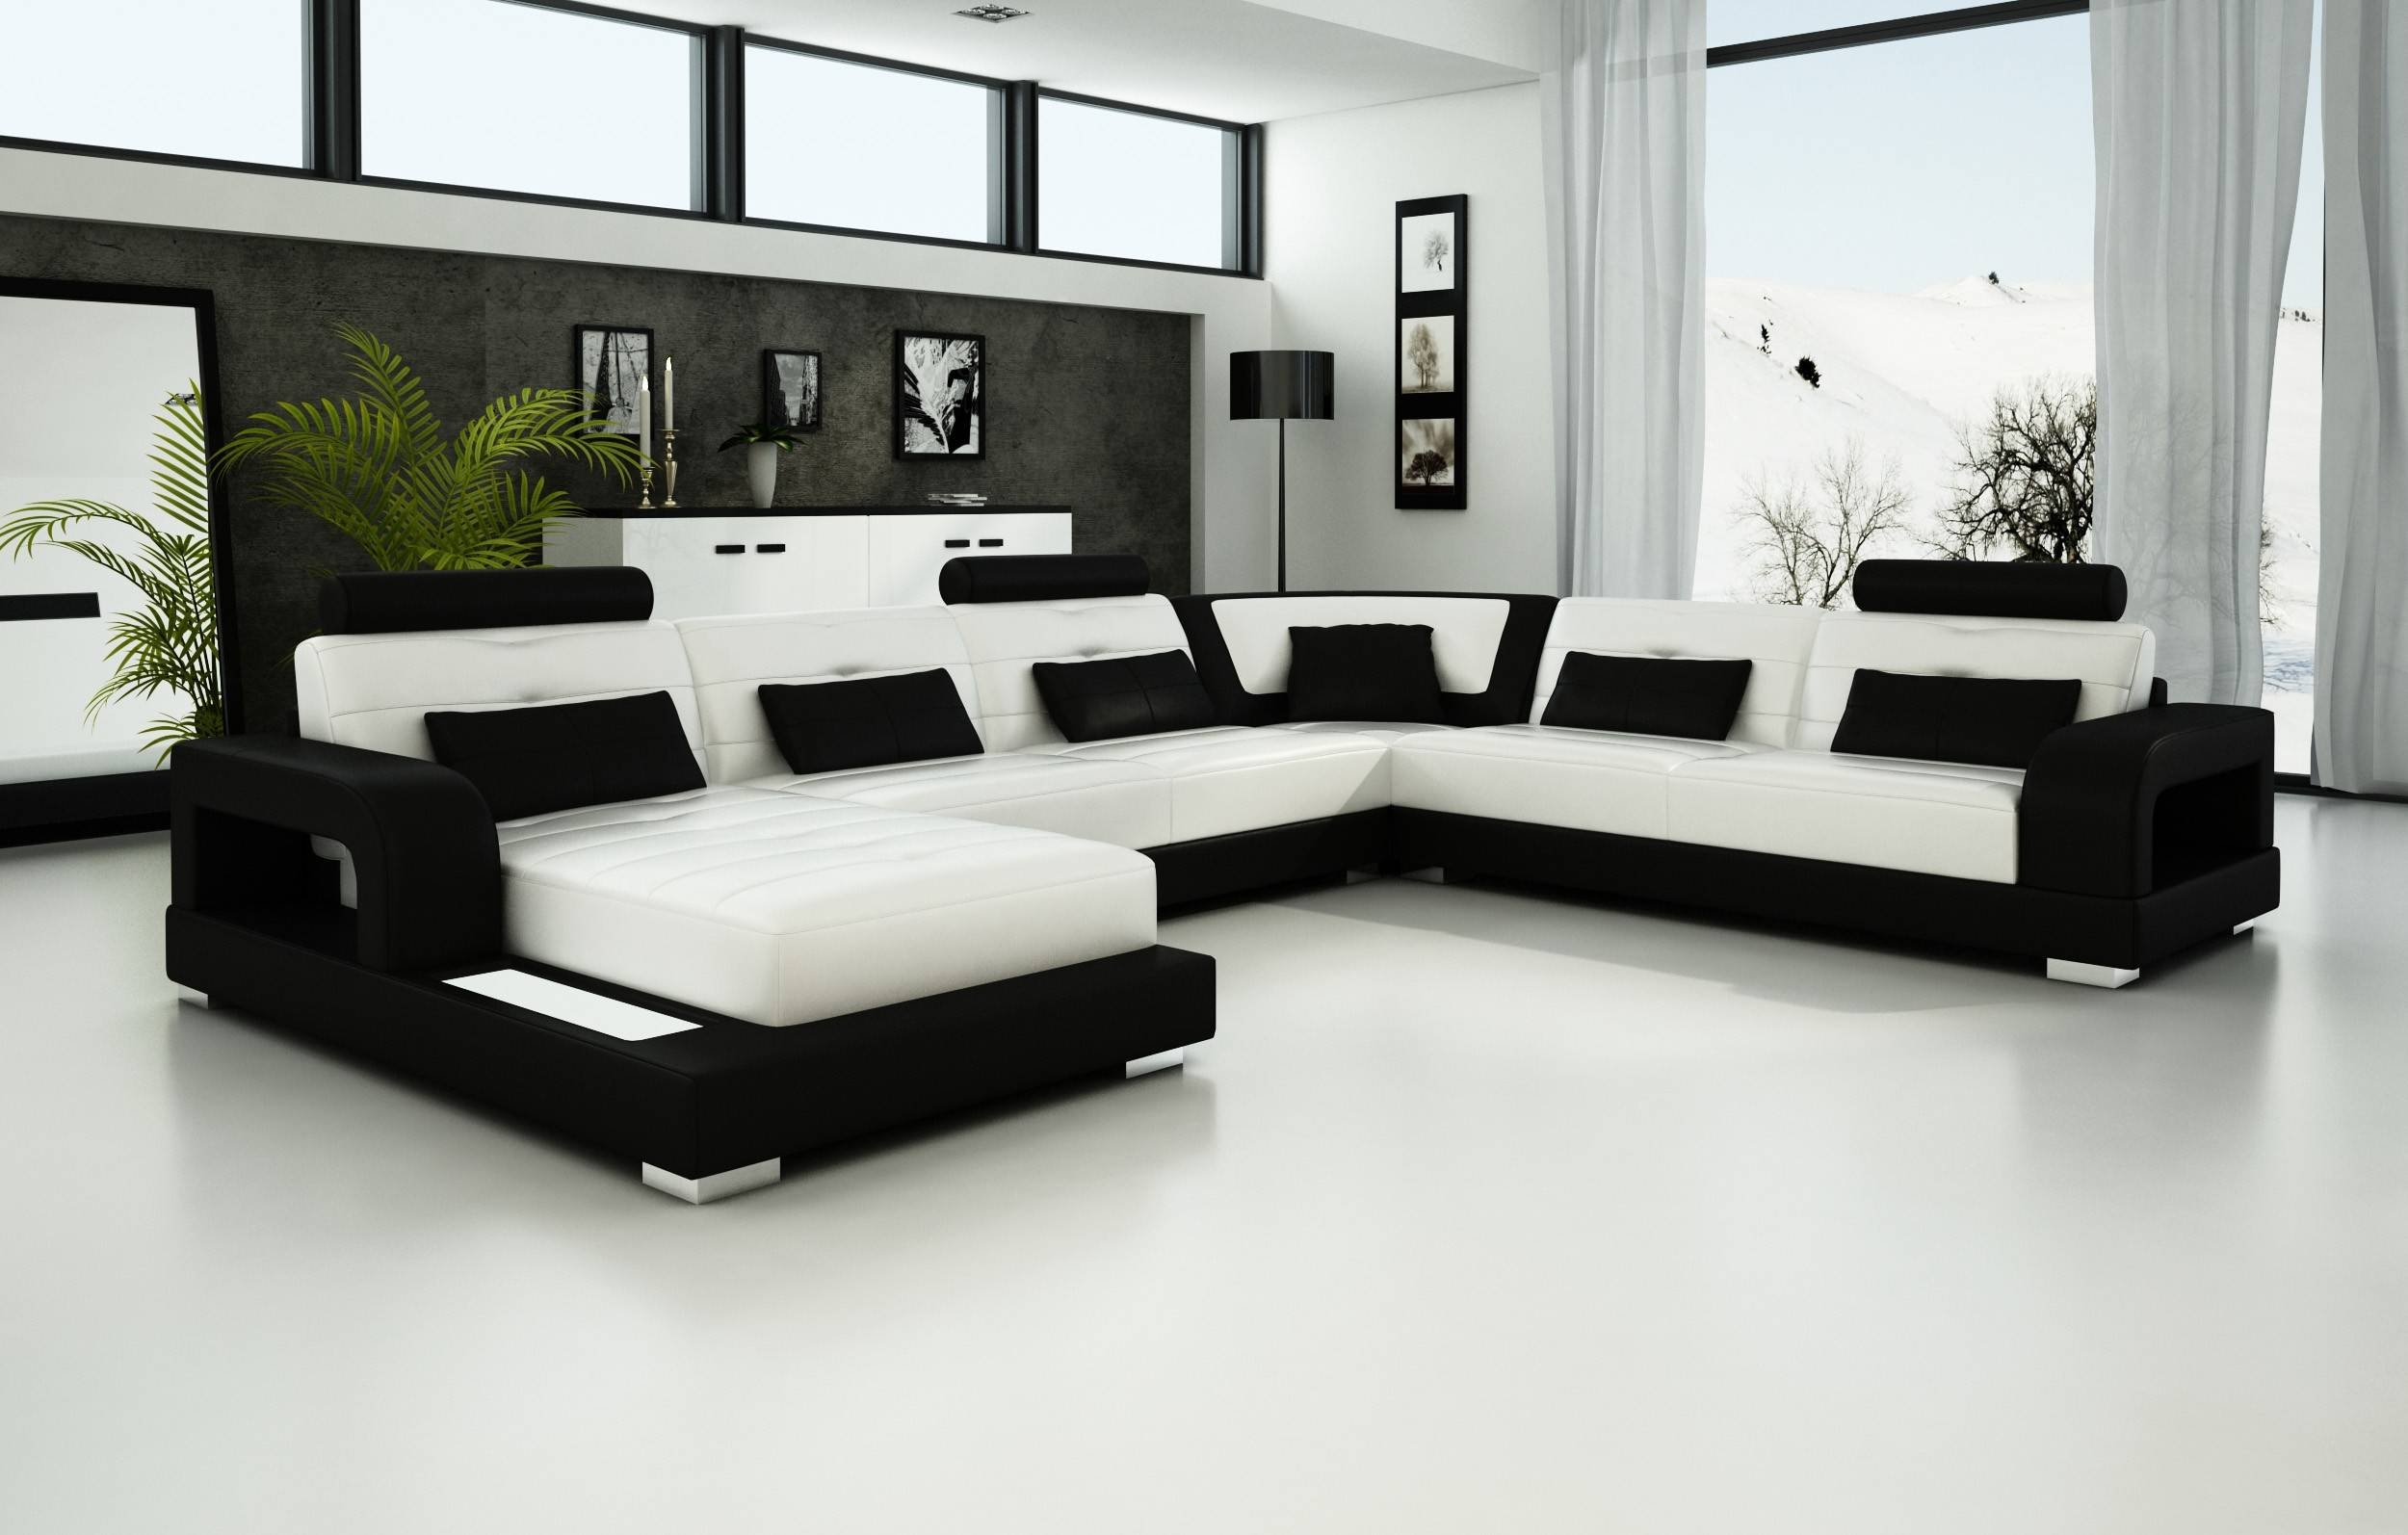 Bedroom : Small Sofa Leather Sectional Sleeper Sofas Modern with regard to Black and White Leather Sofas (Image 3 of 15)